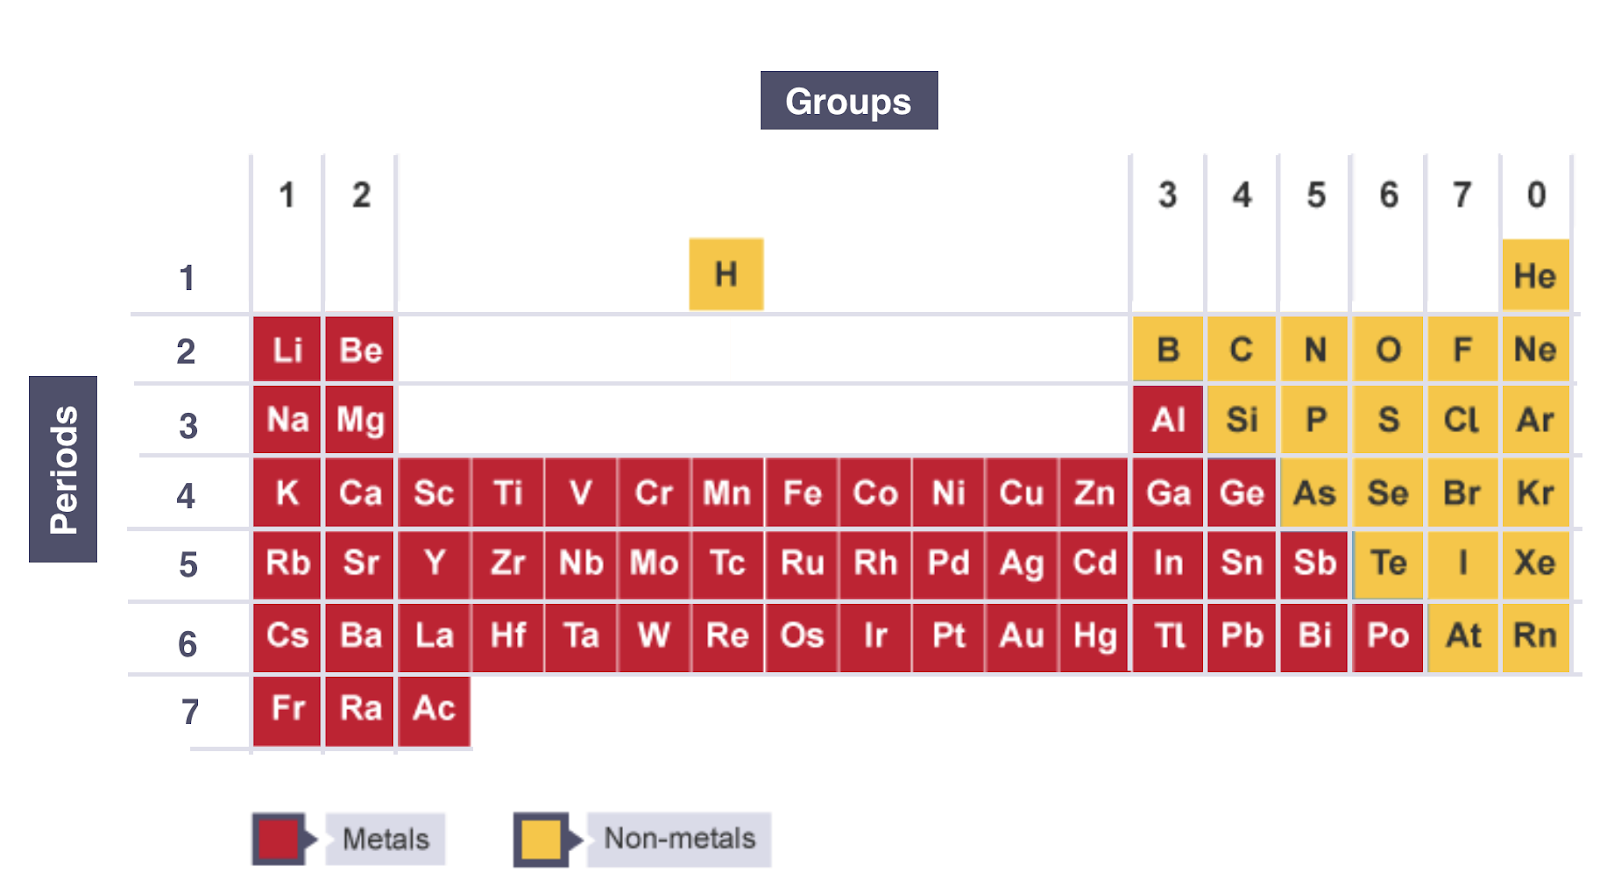 Igcse chemistry 2017 118 understand how elements are arranged in the periodic table all elements are arranged in the order of increasing atomic number urtaz Image collections